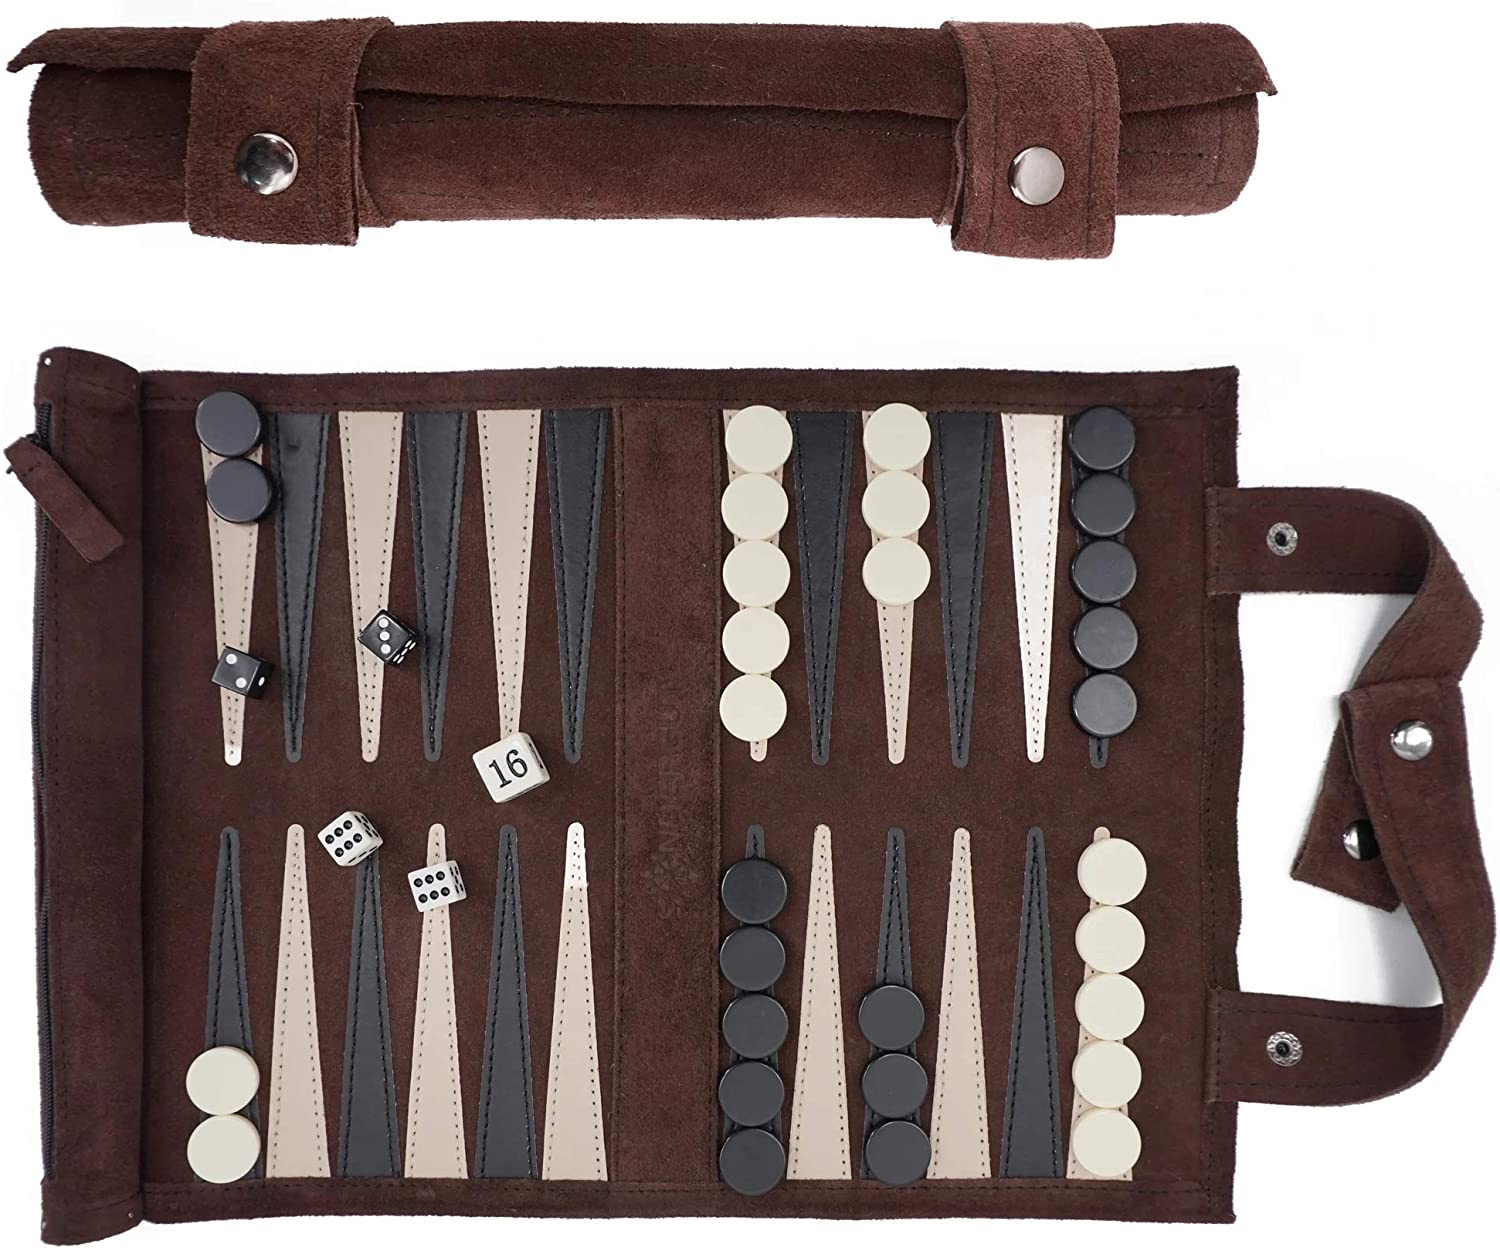 Backgammon Suede Roll-Up Game